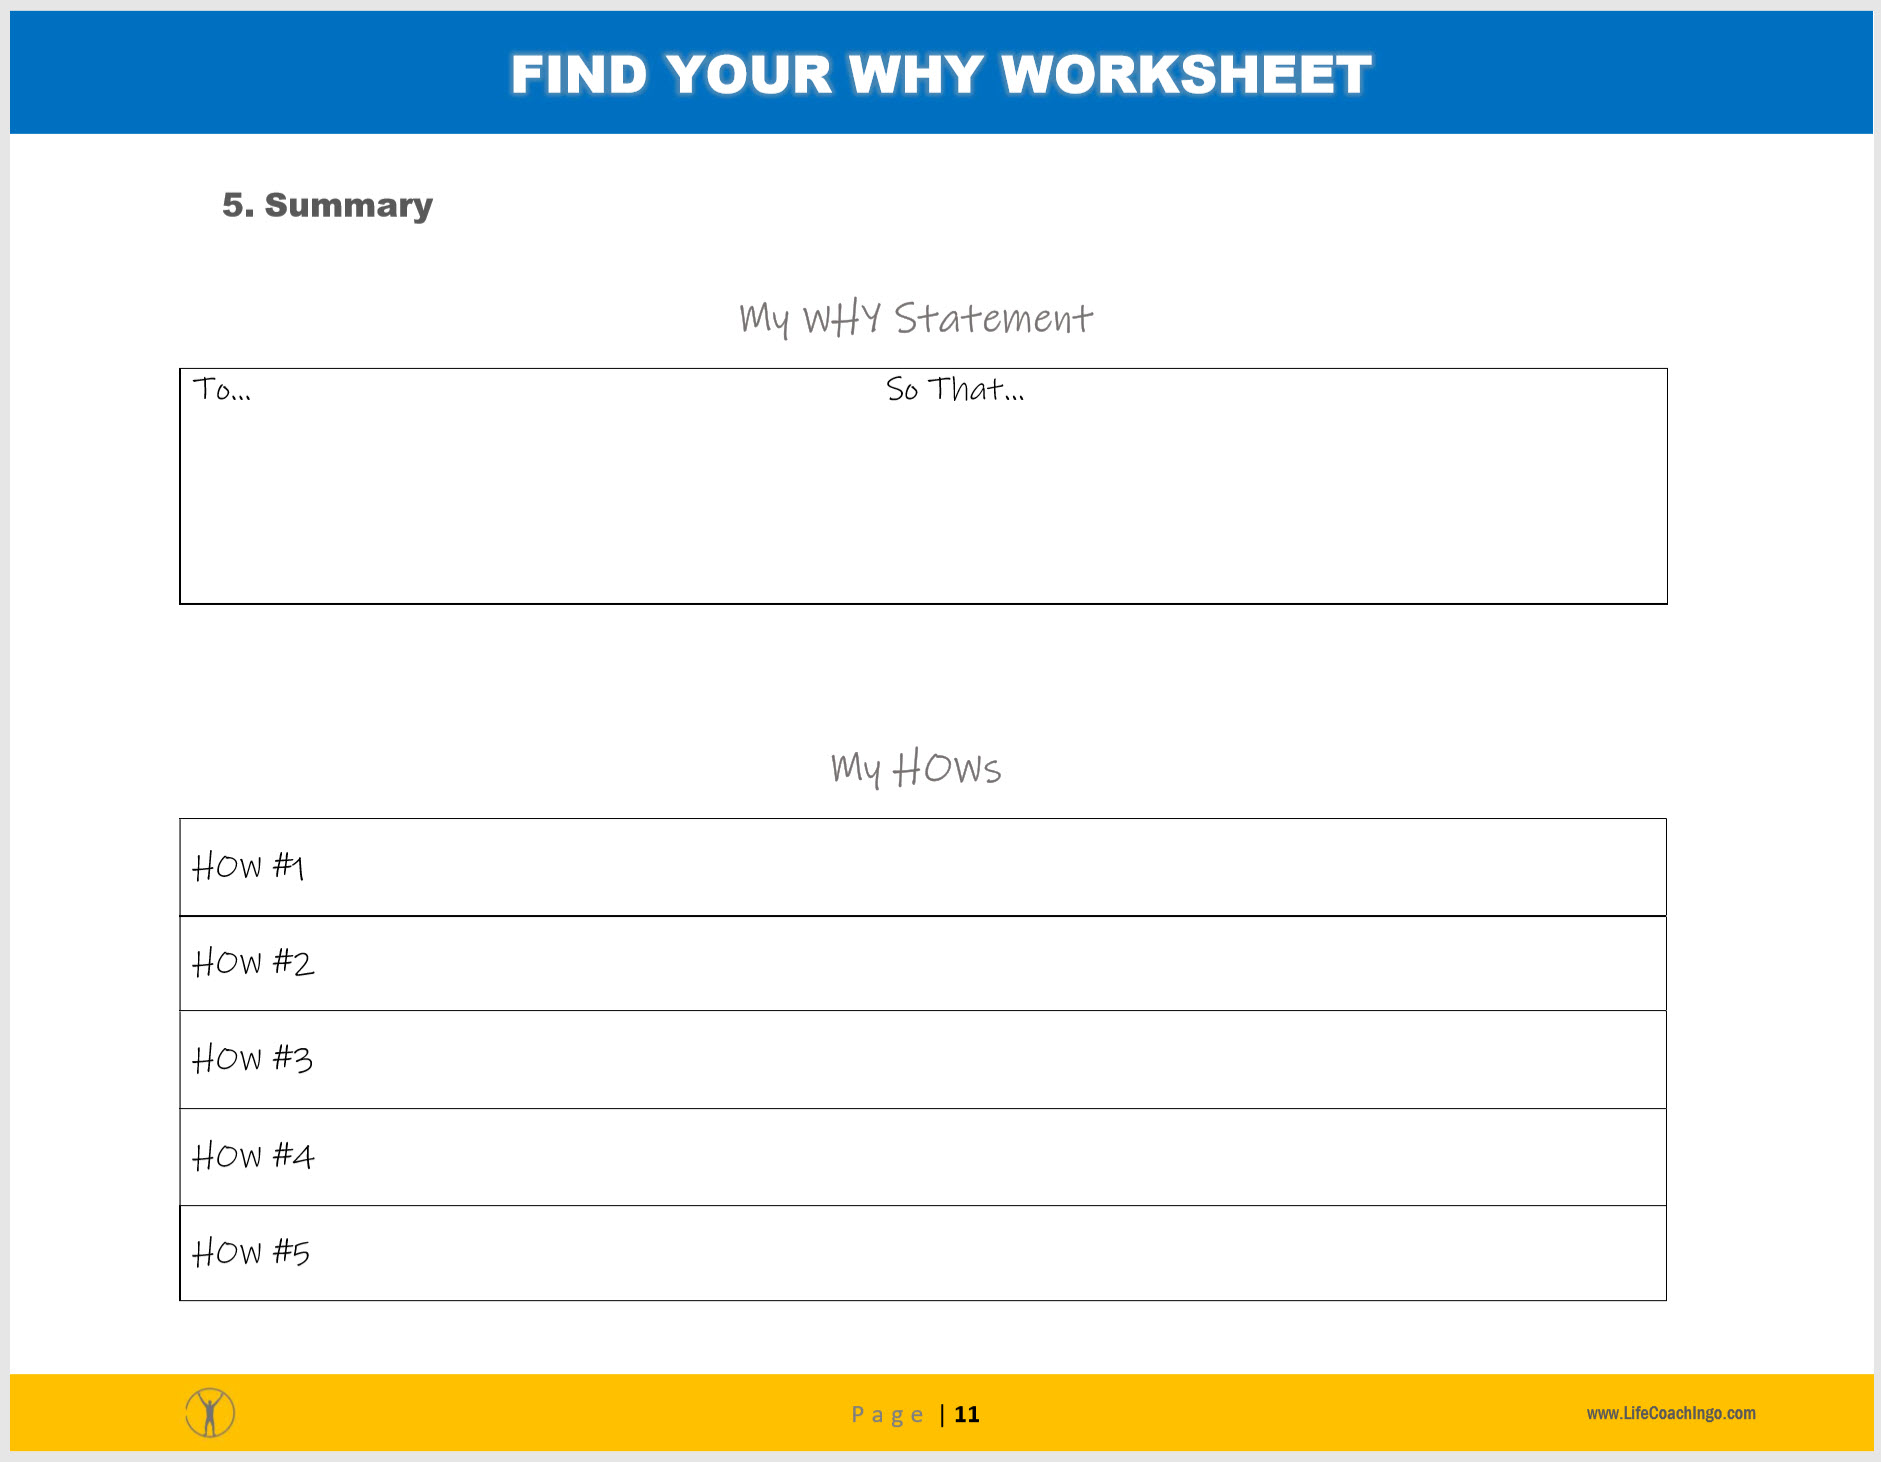 Finding Your Why Worksheet